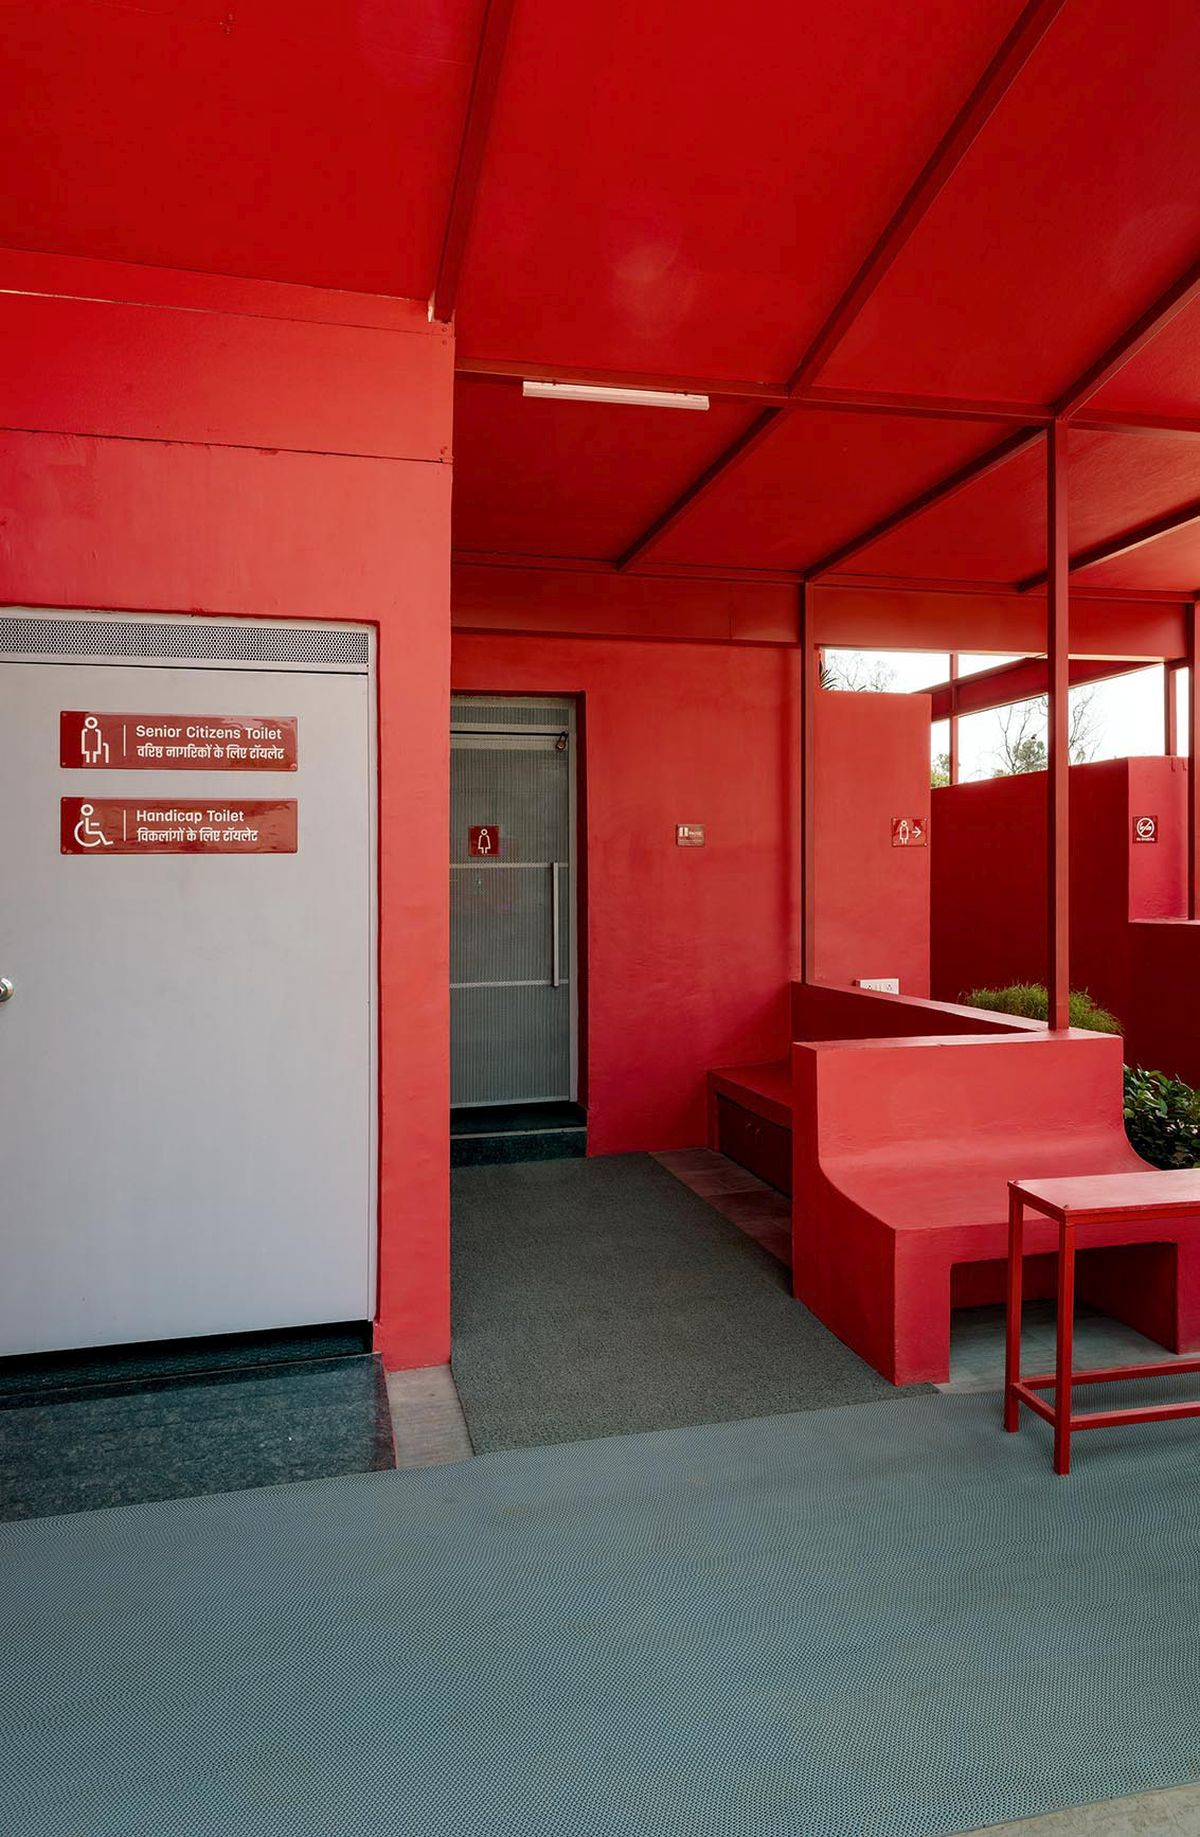 Pause - Restrooms, at Bombay-Goa Highway, by RC Architects 3